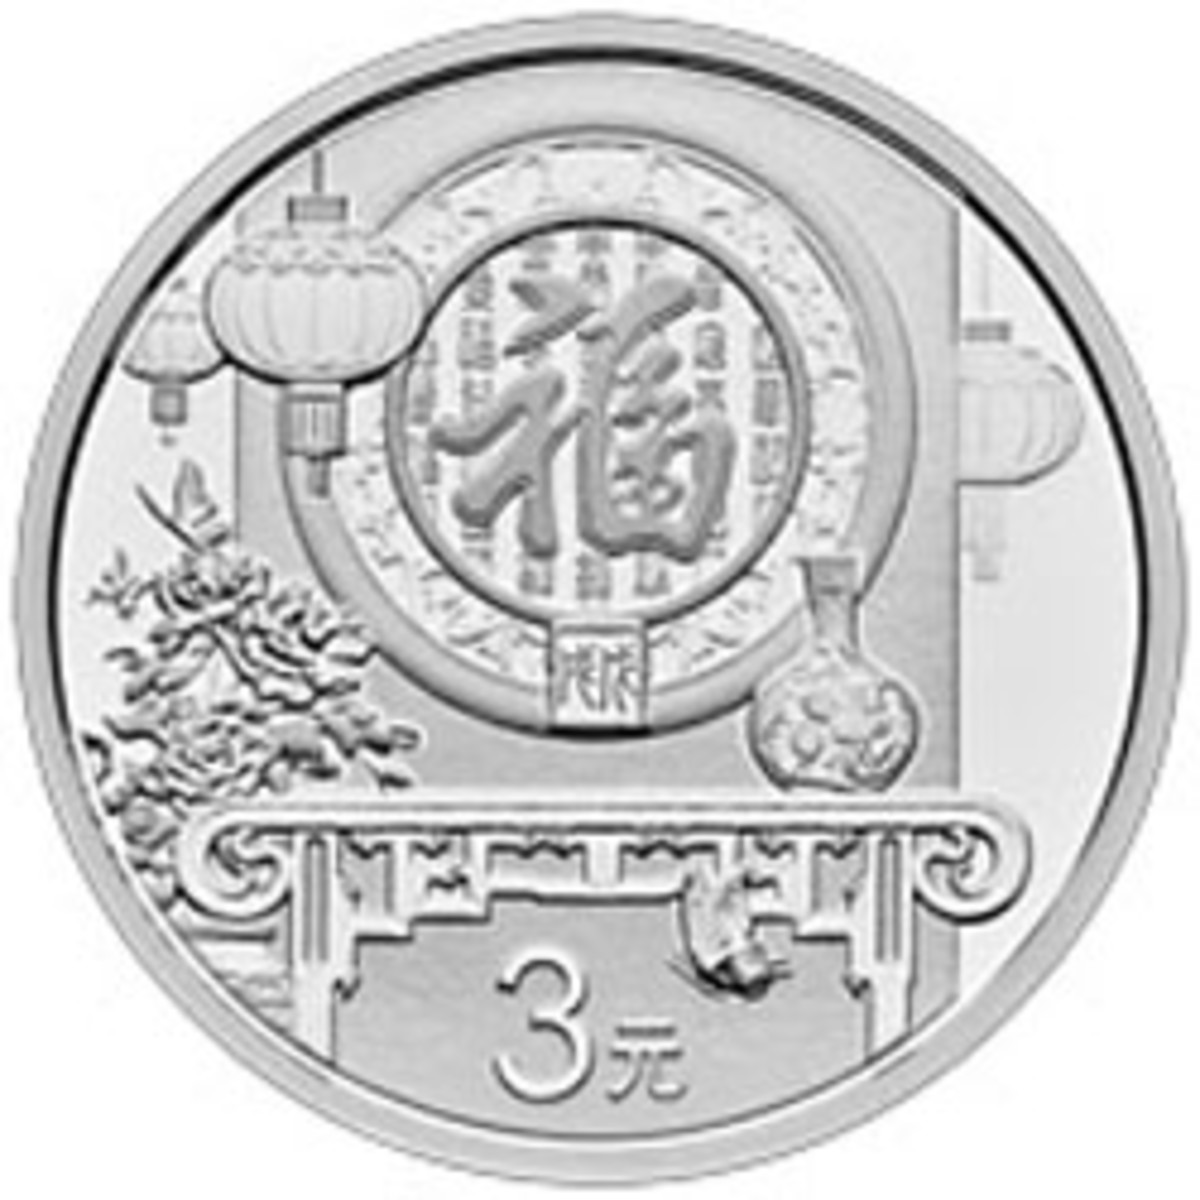 China wishes the world wealth and success in the coming year on its silver ¥3. (Image courtesy China Gold)